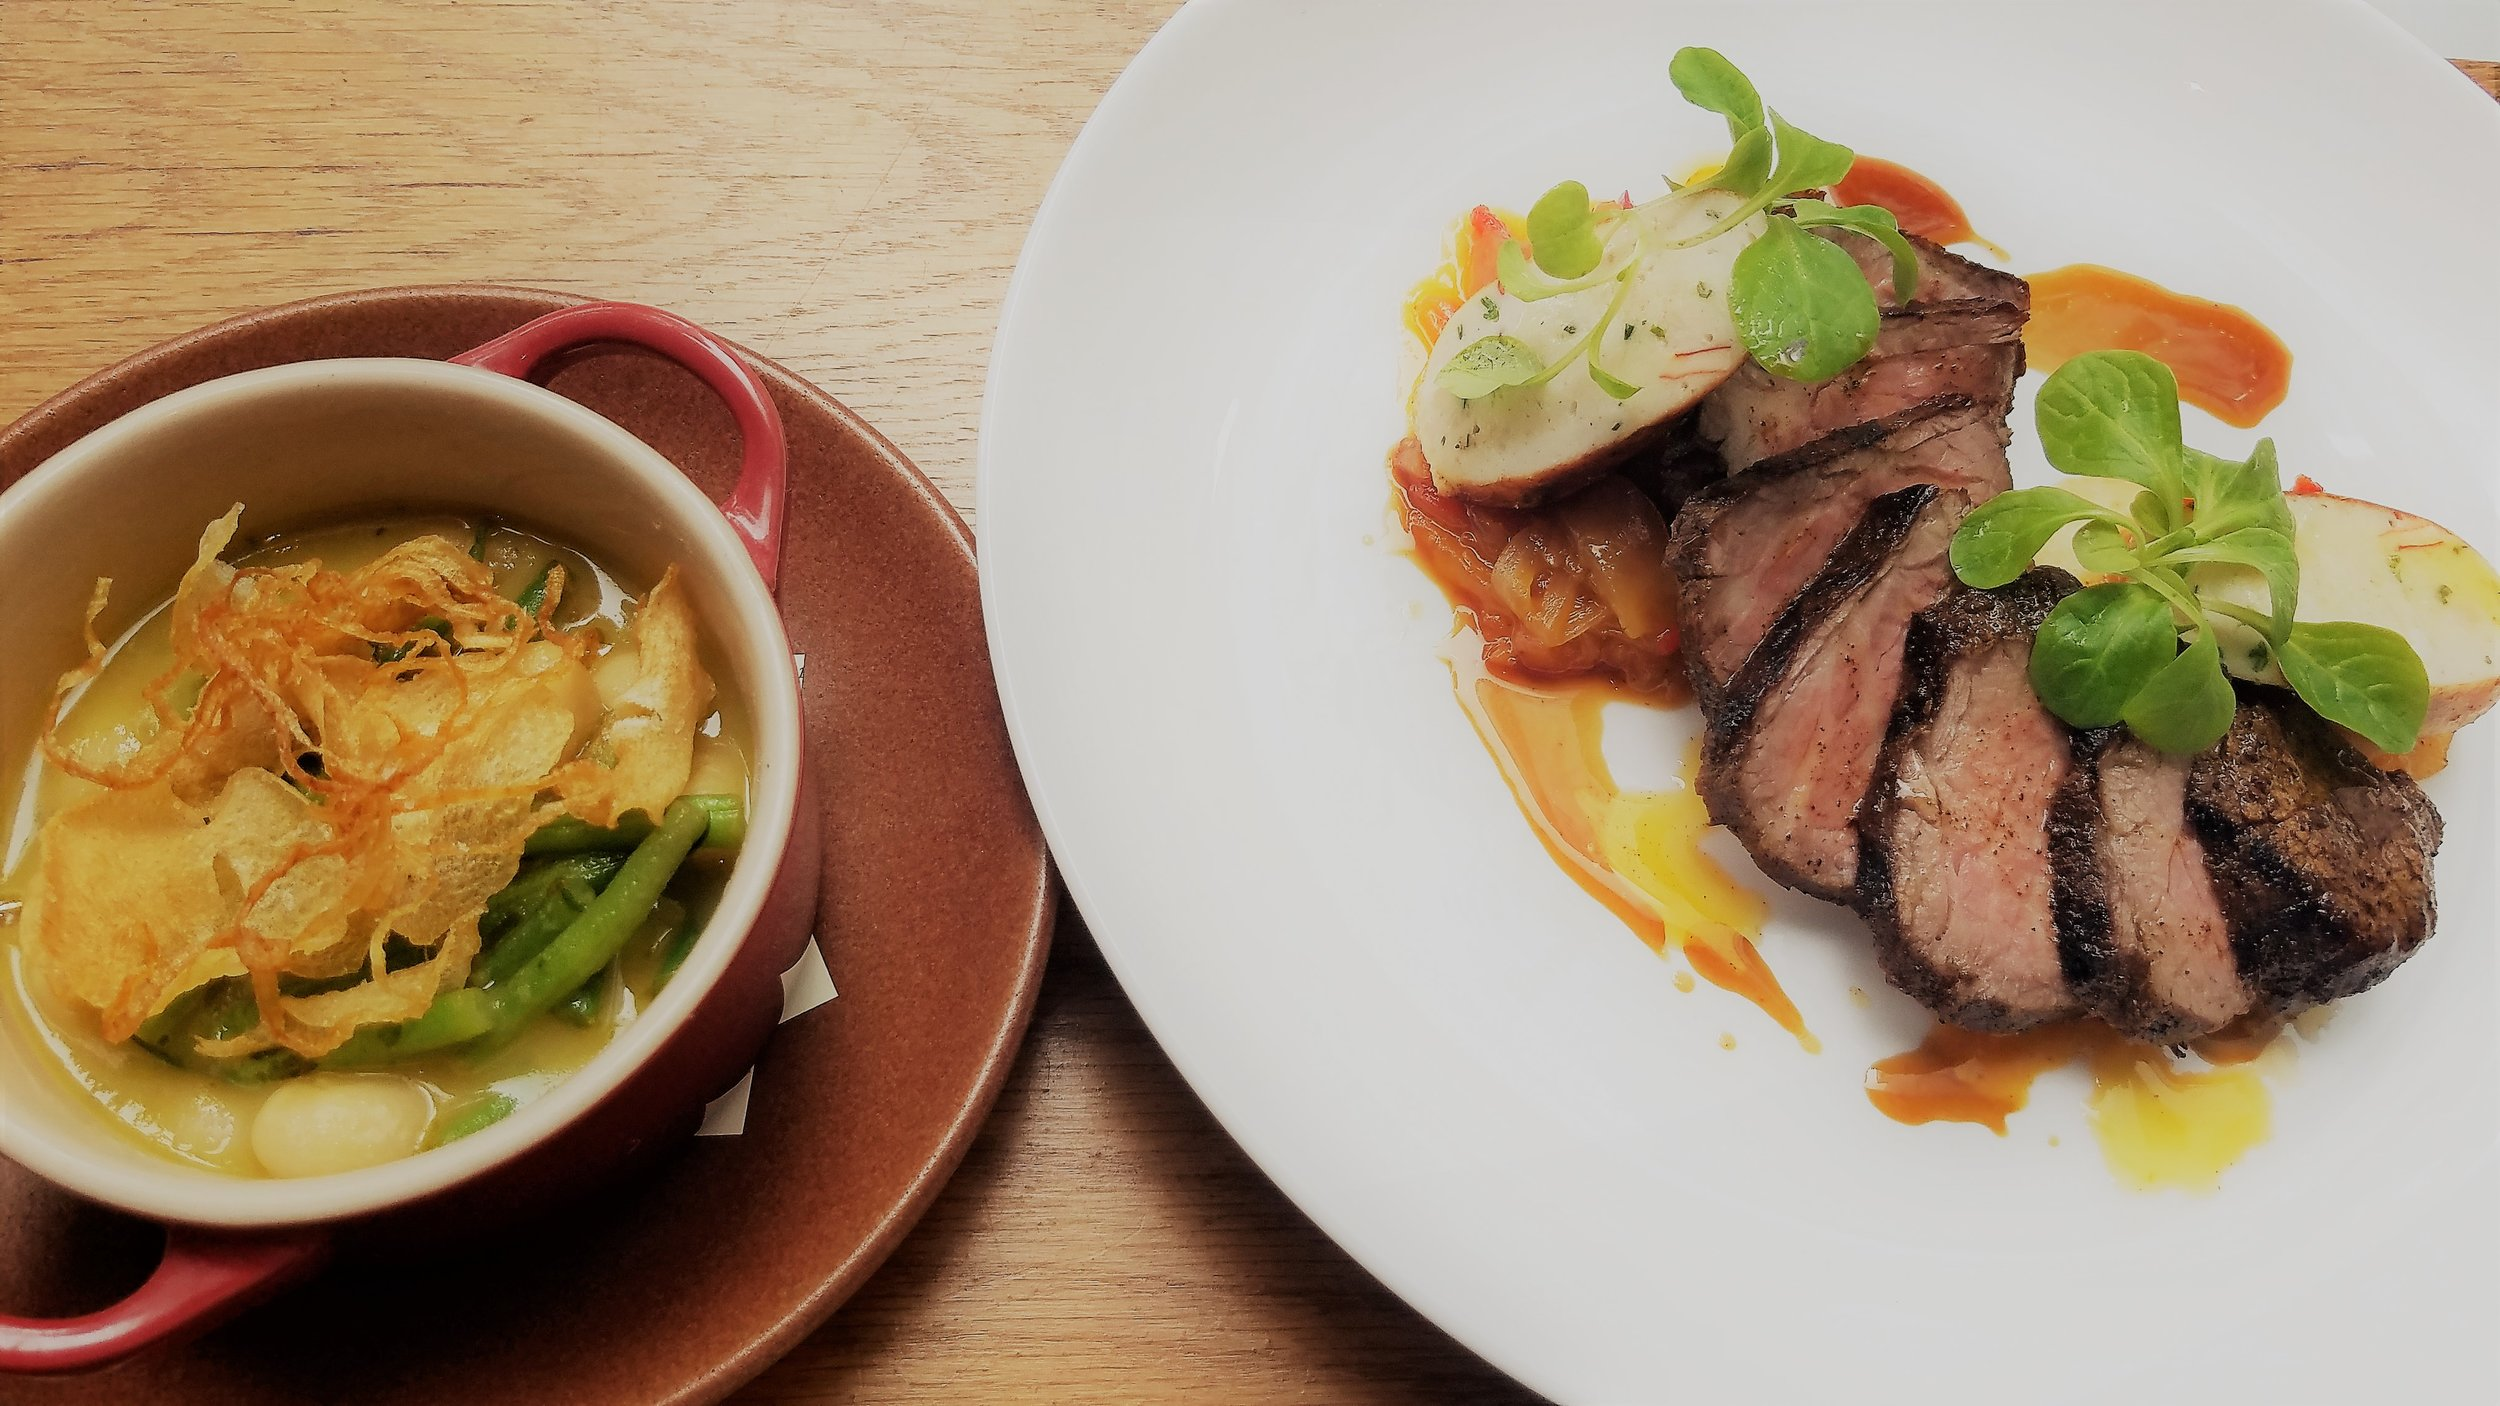 Smoked Tri Tip & Maine Lobster Sausage Jimmy Nardello Pepper Marmalade, Haricots Verts, Iacopi Butter Beans